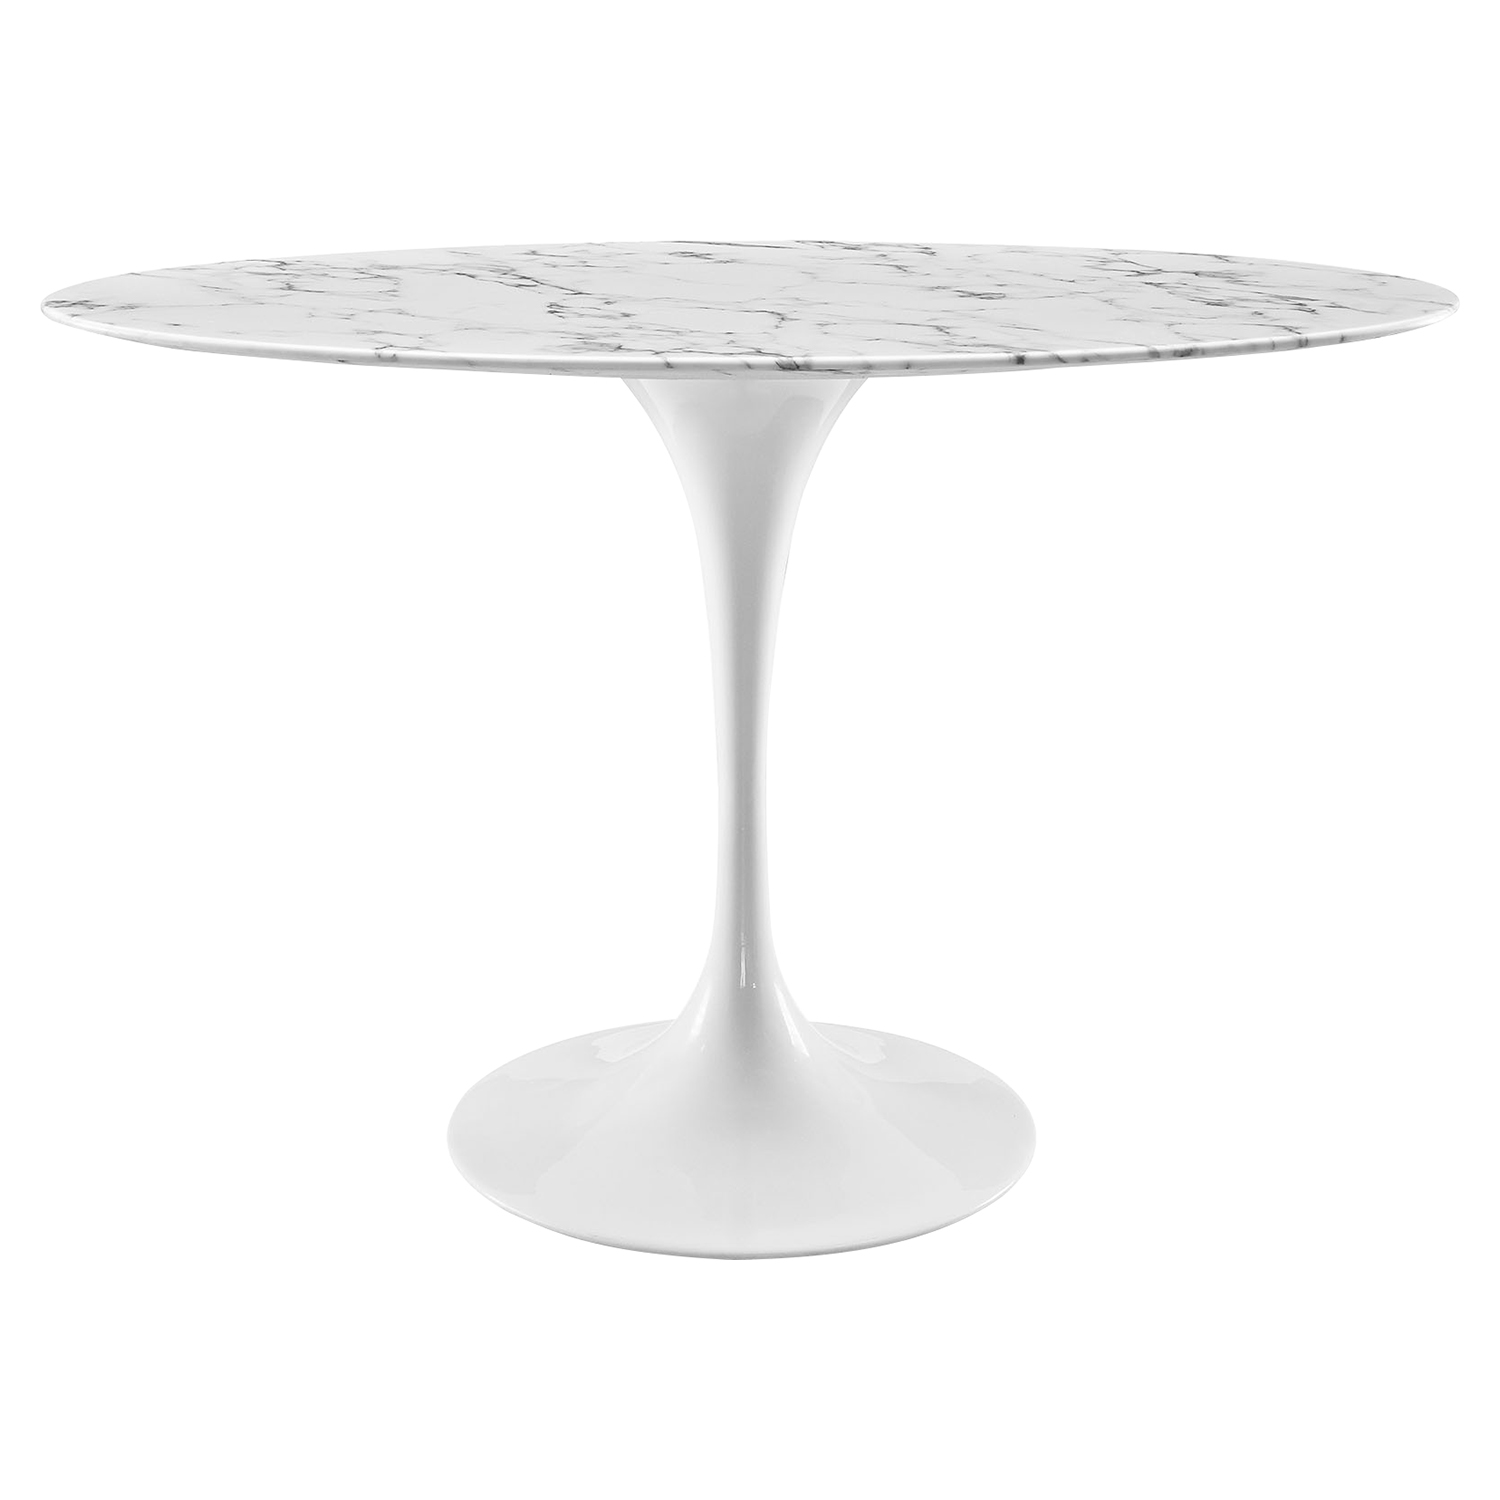 "Lippa 48"" Oval Artificial Marble Dining Table - White - EEI-2021-WHI"